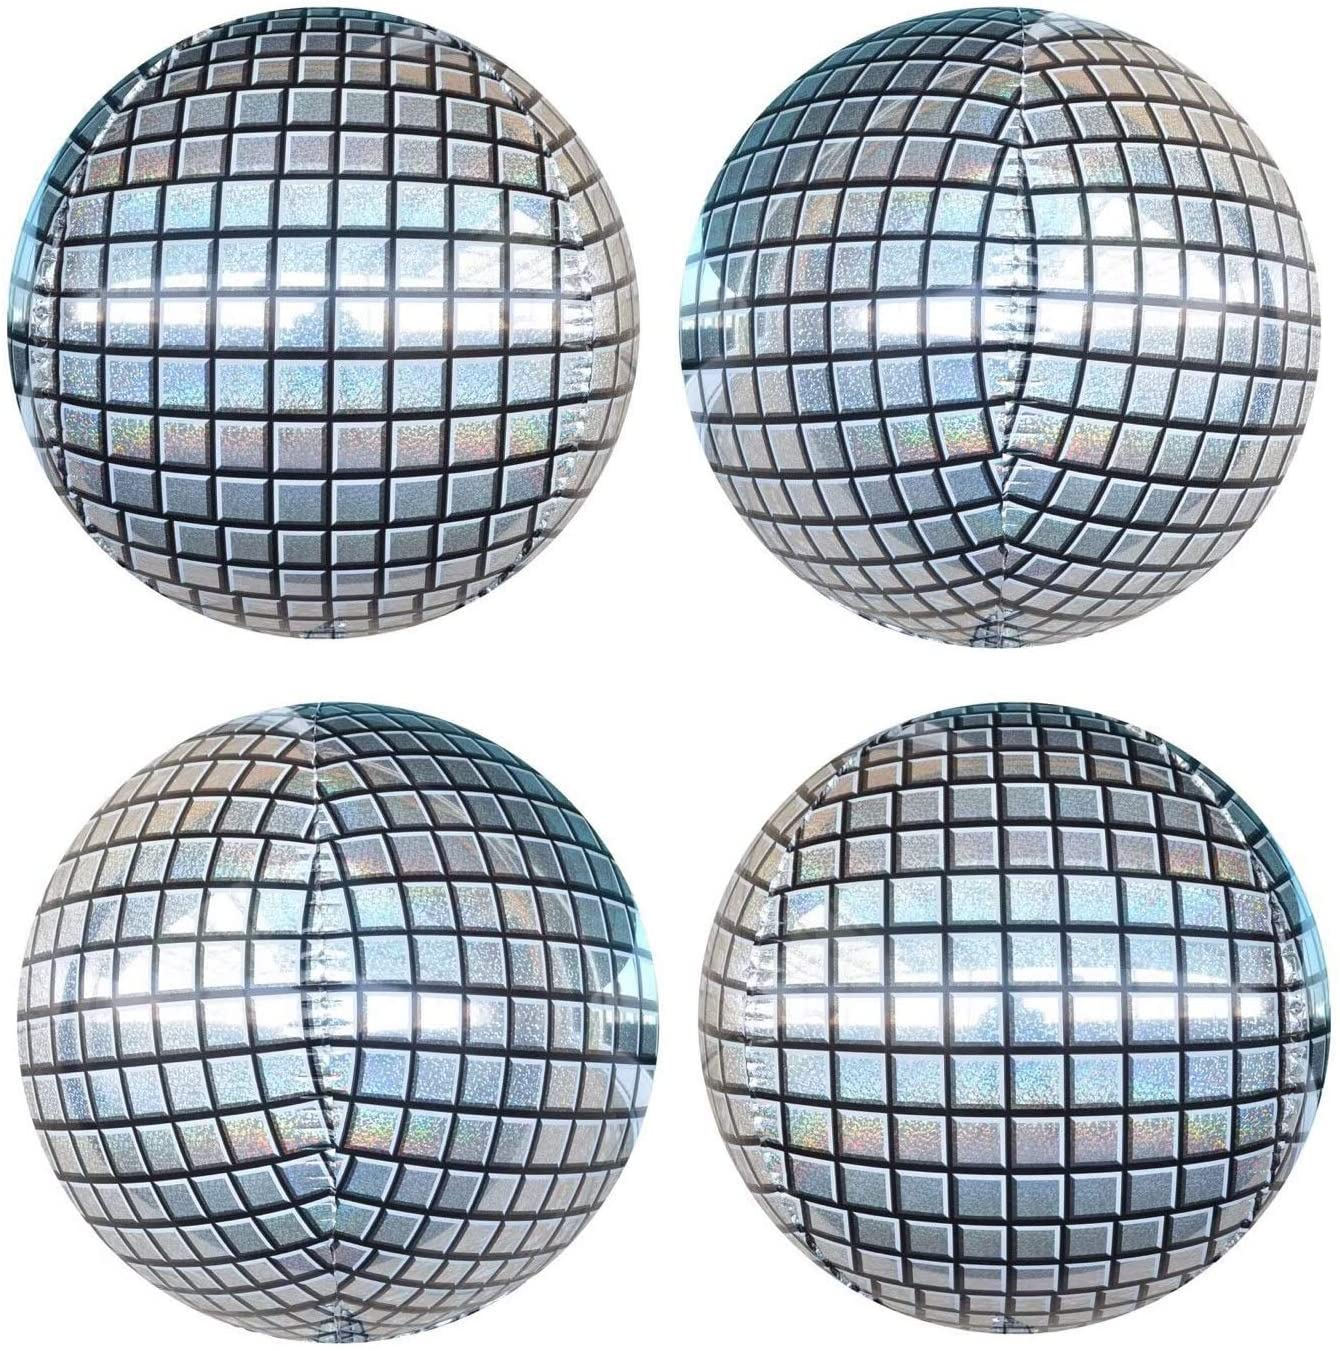 4Pcs 22inch Silver Laser Disco Ball Balloon Hangable 4D Large Round Inflatable Sphere Shaped Aluminum Foil Mirror Balloon Birthday Party Wedding Baby Shower Marriage Decor Supplies